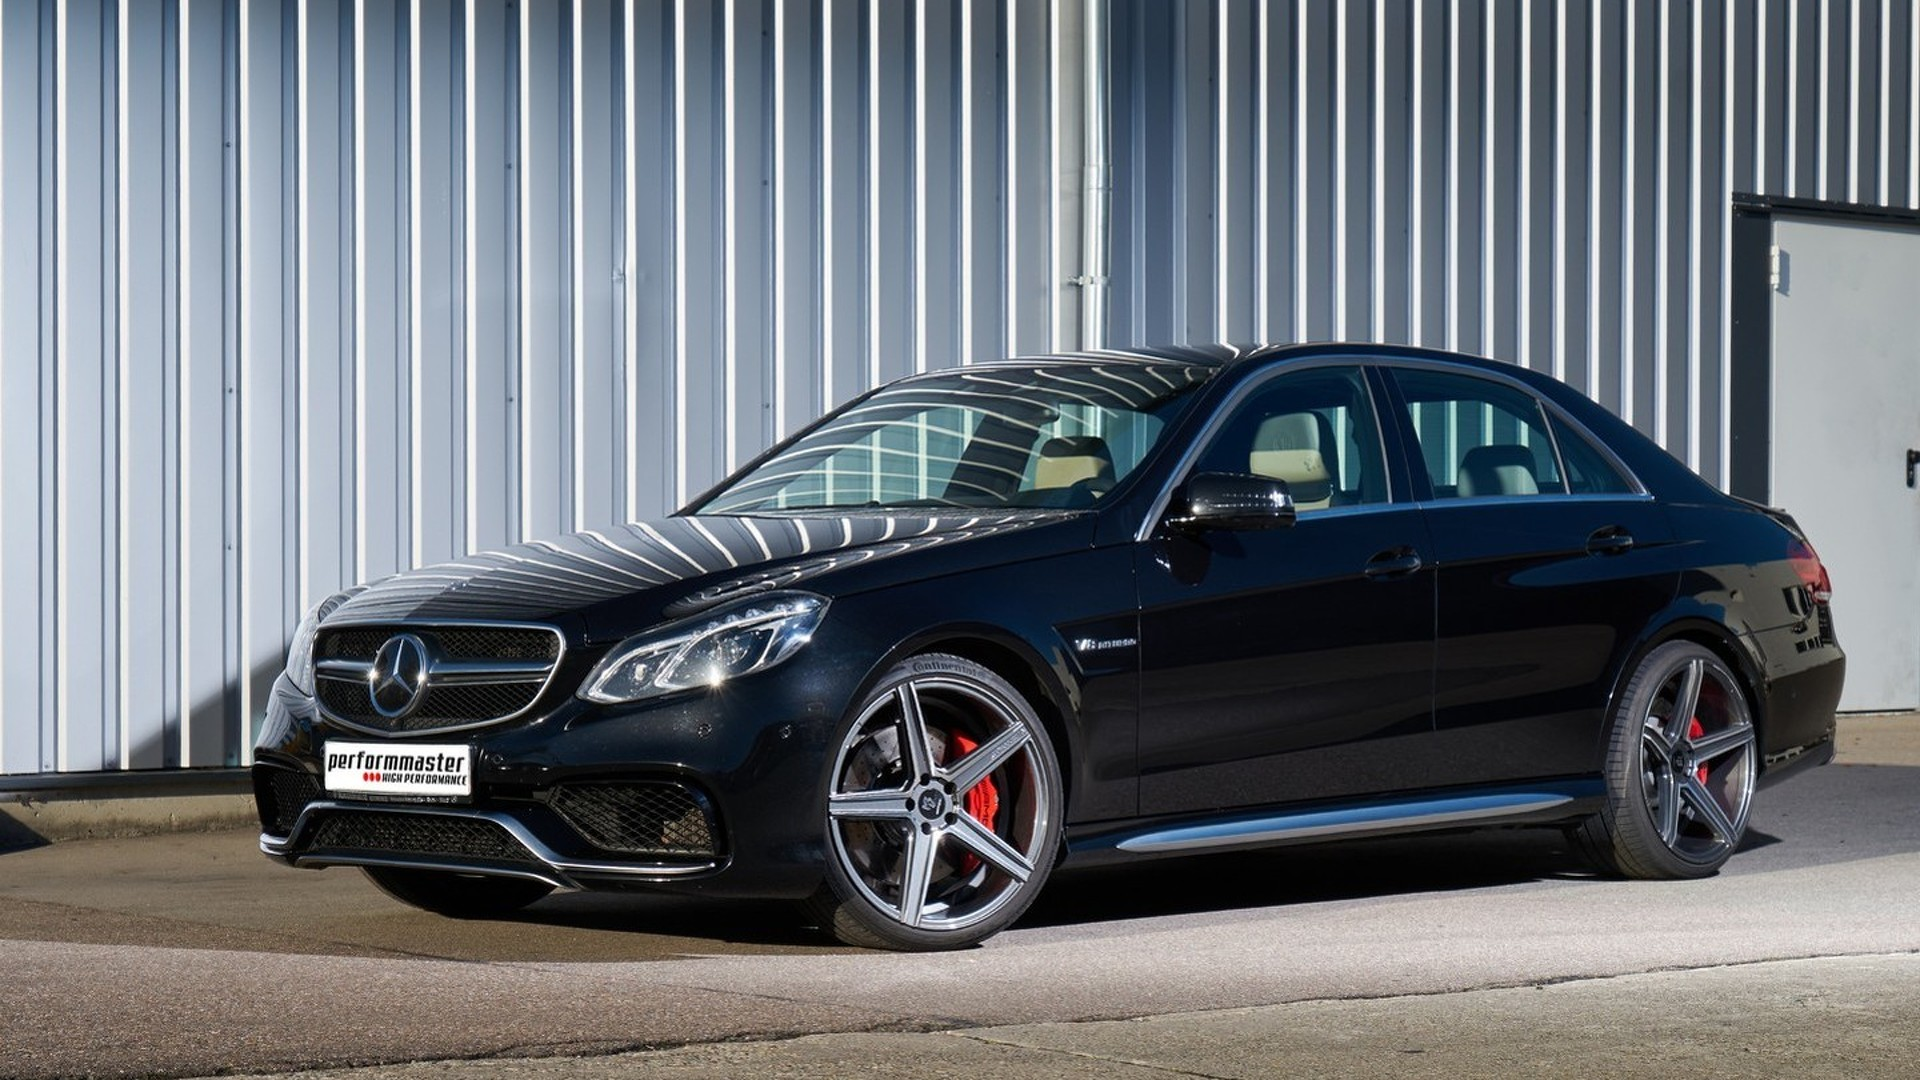 Mercedes E63 AMG gets 702 PS via software wizardry